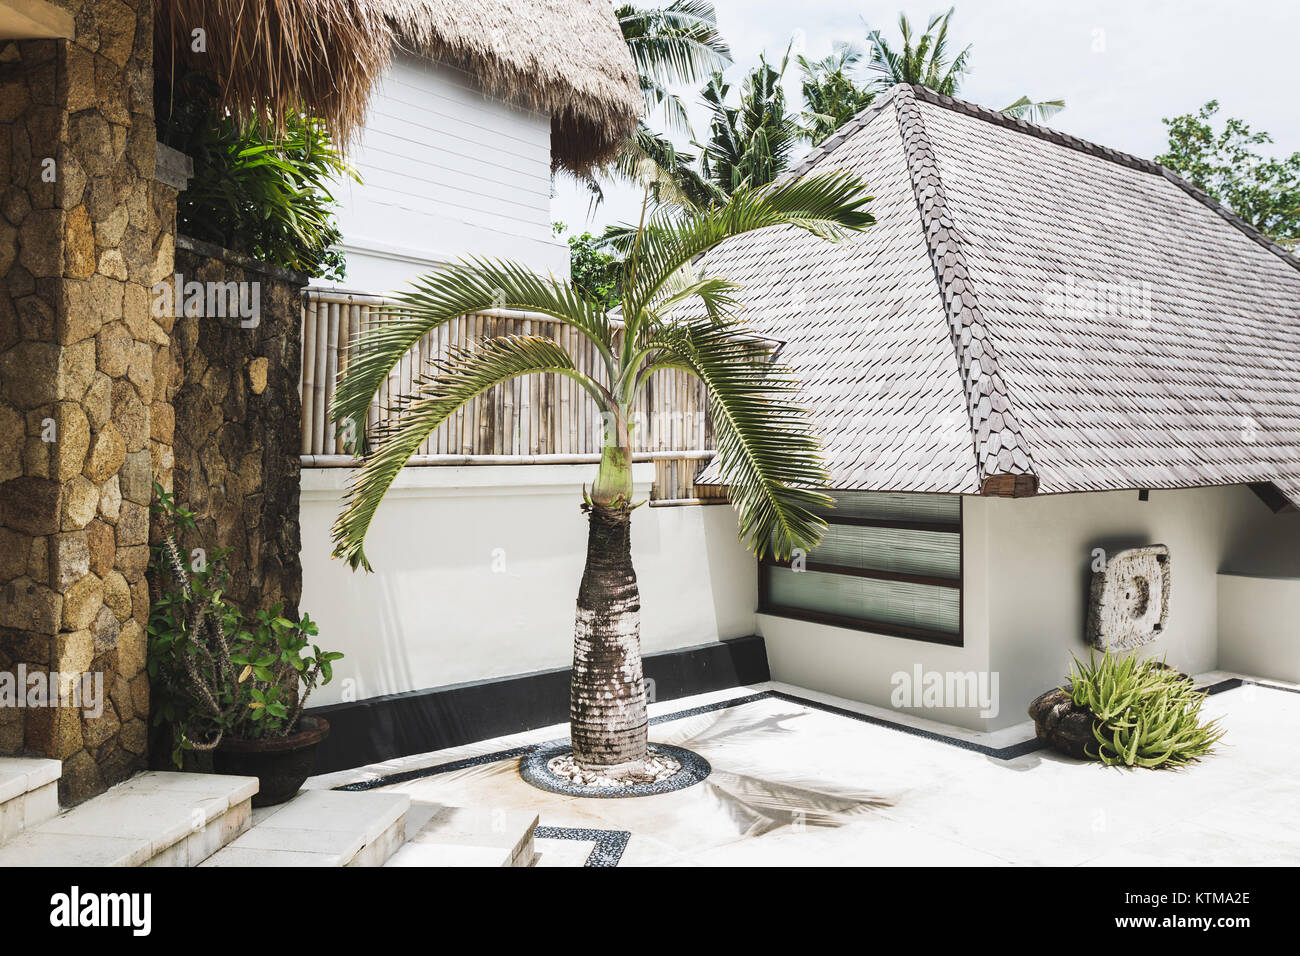 Decorative Small Palm Tree On White Background Wall In House